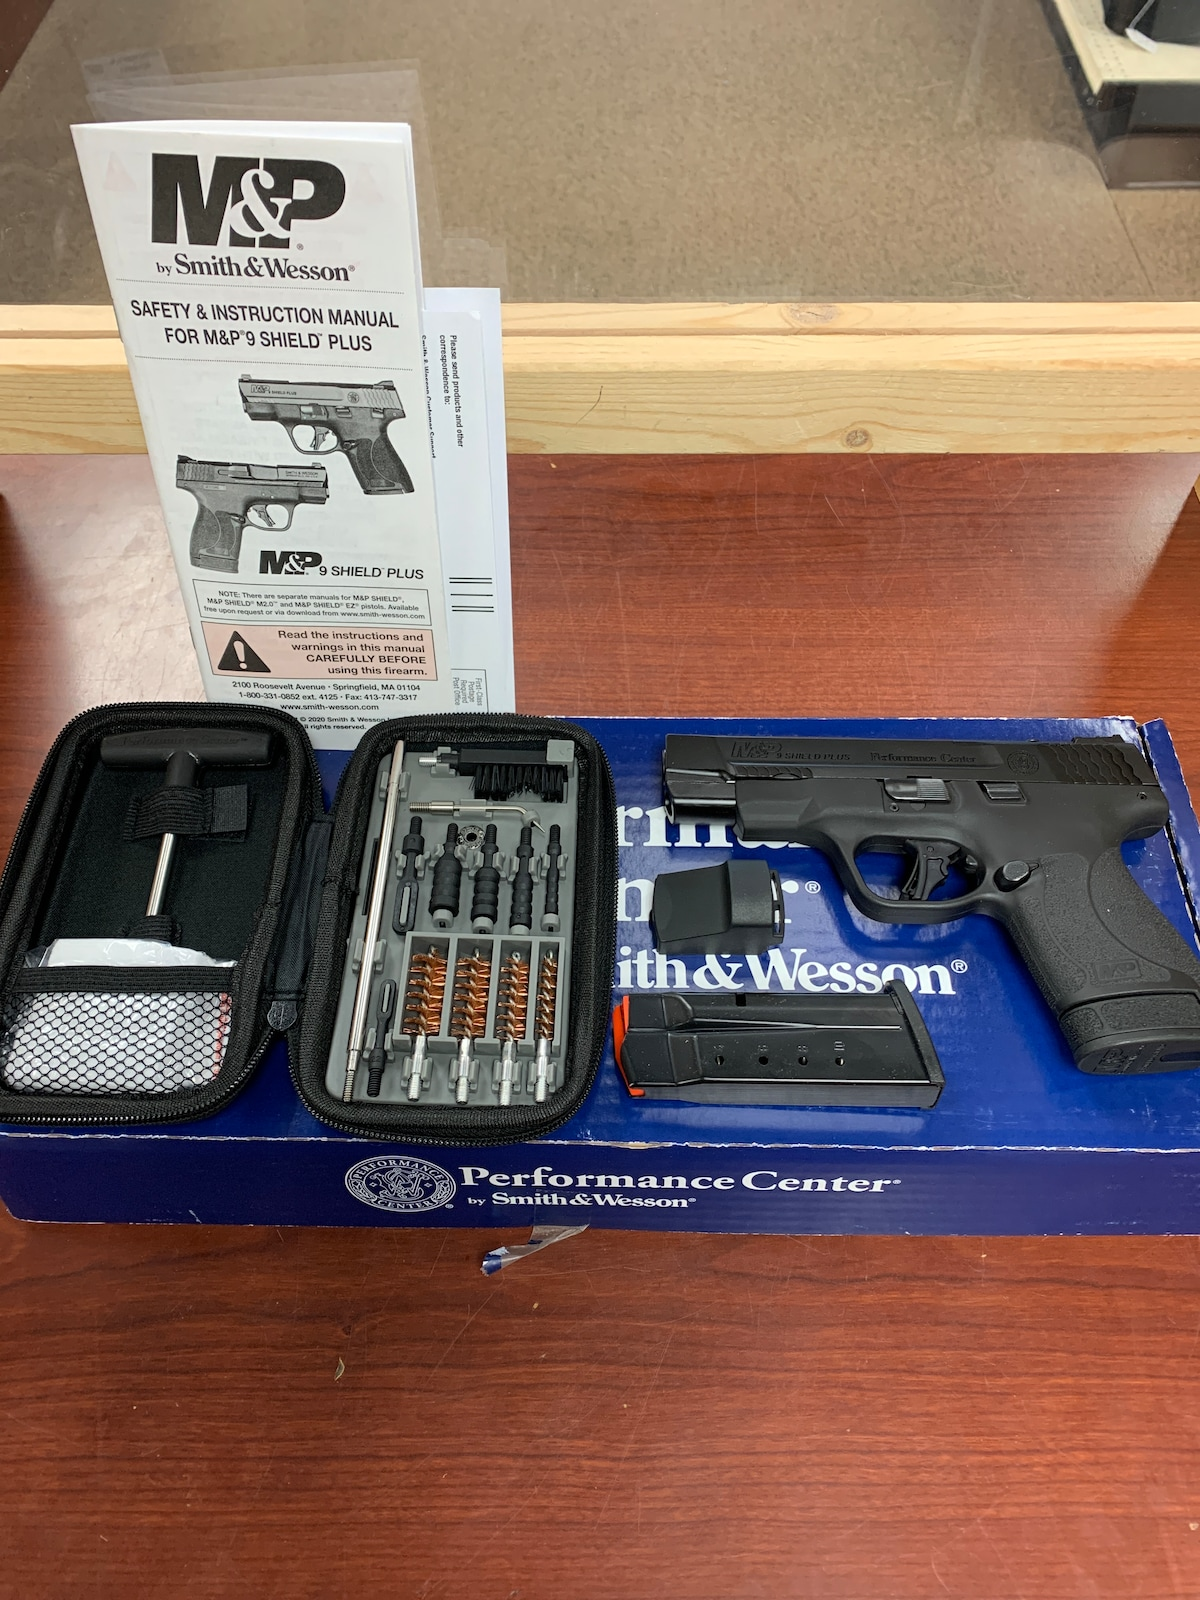 SMITH & WESSON pc m&p9 shield pls nts op pt, no thumb safety, fiber optic, ported, ct red dot 13253